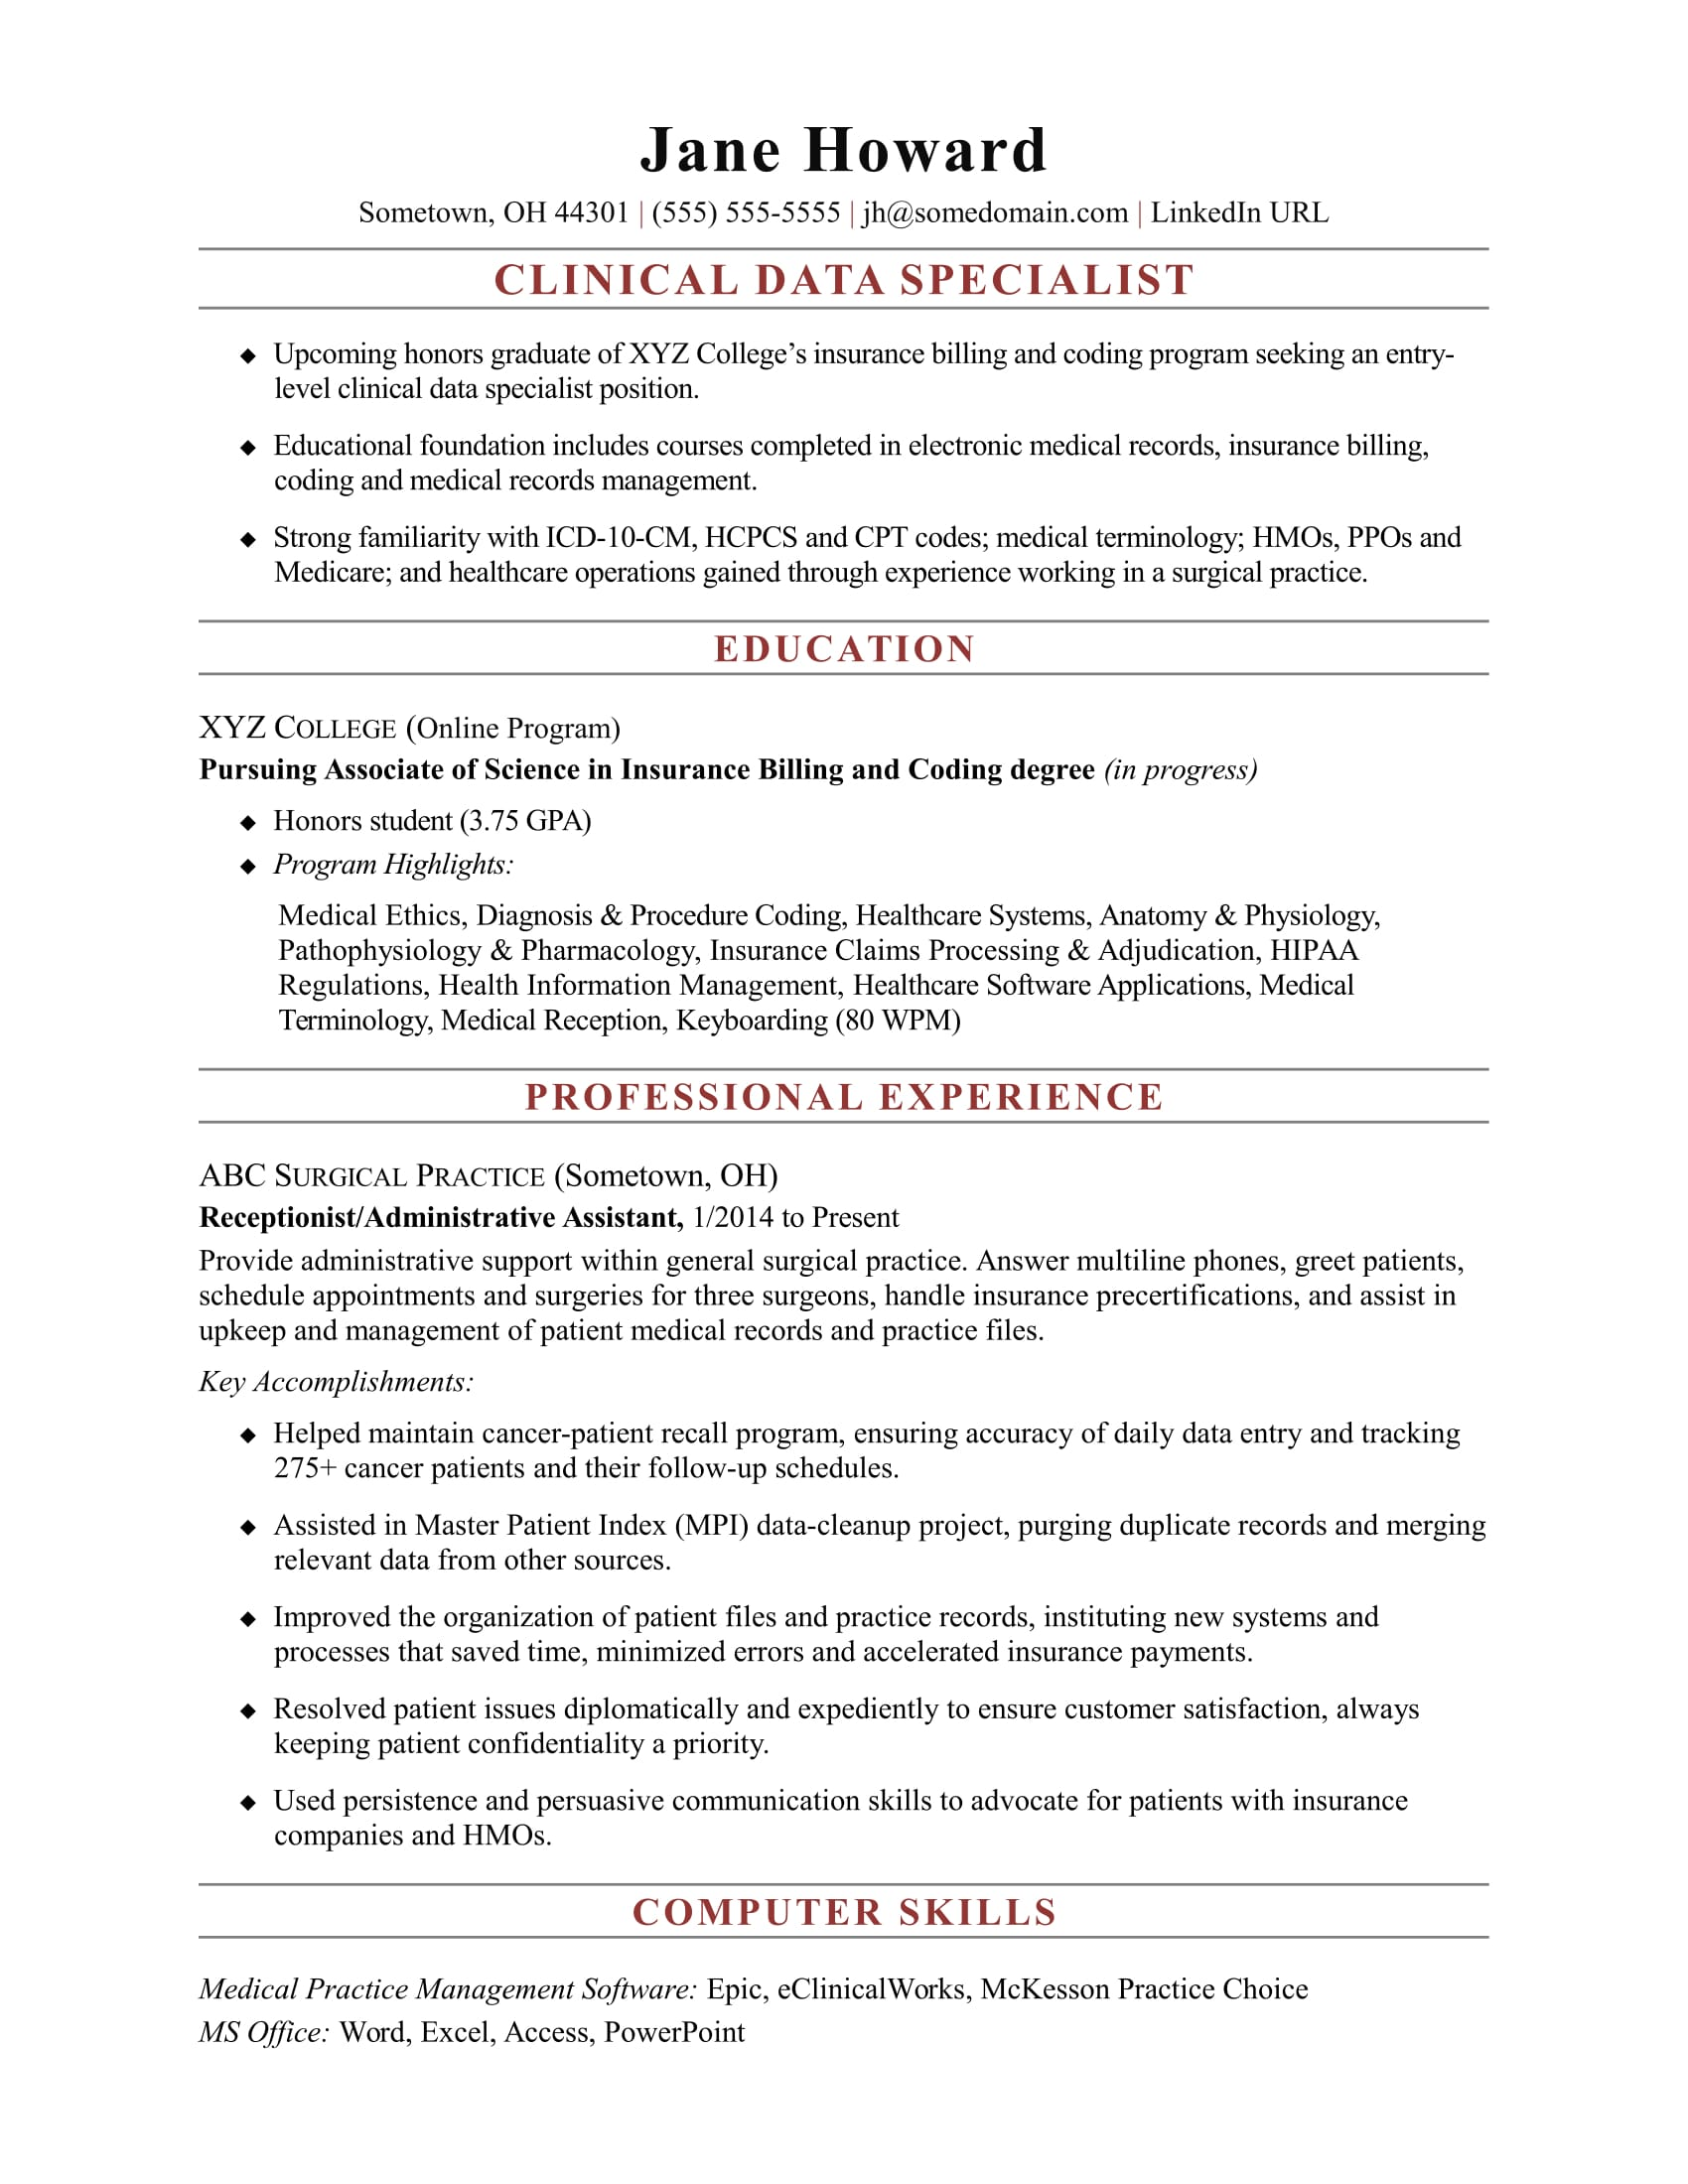 Samples Of Entry Level Resumes Entry Level Clinical Data Specialist Resume Sample Monster